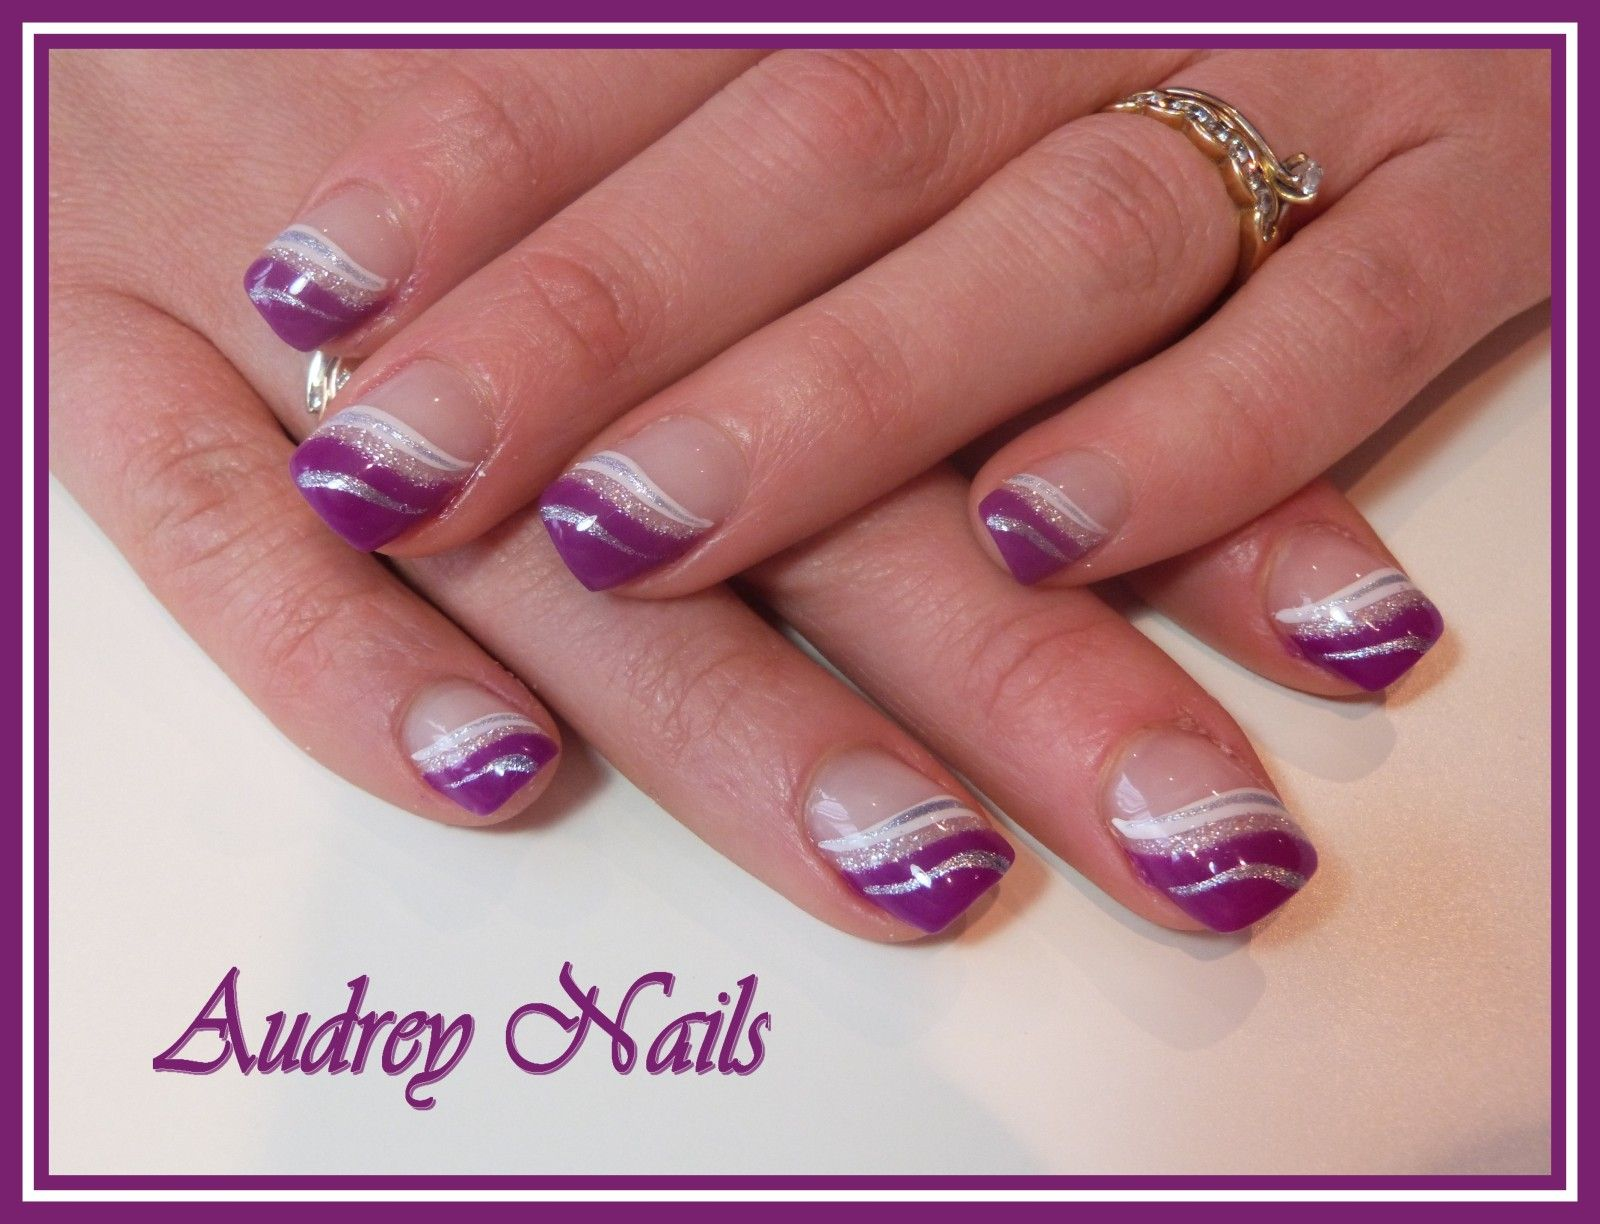 French En Vague Hypnotic Violet Et Blanc Argent Petites Choses De Val Pinterest Ongles